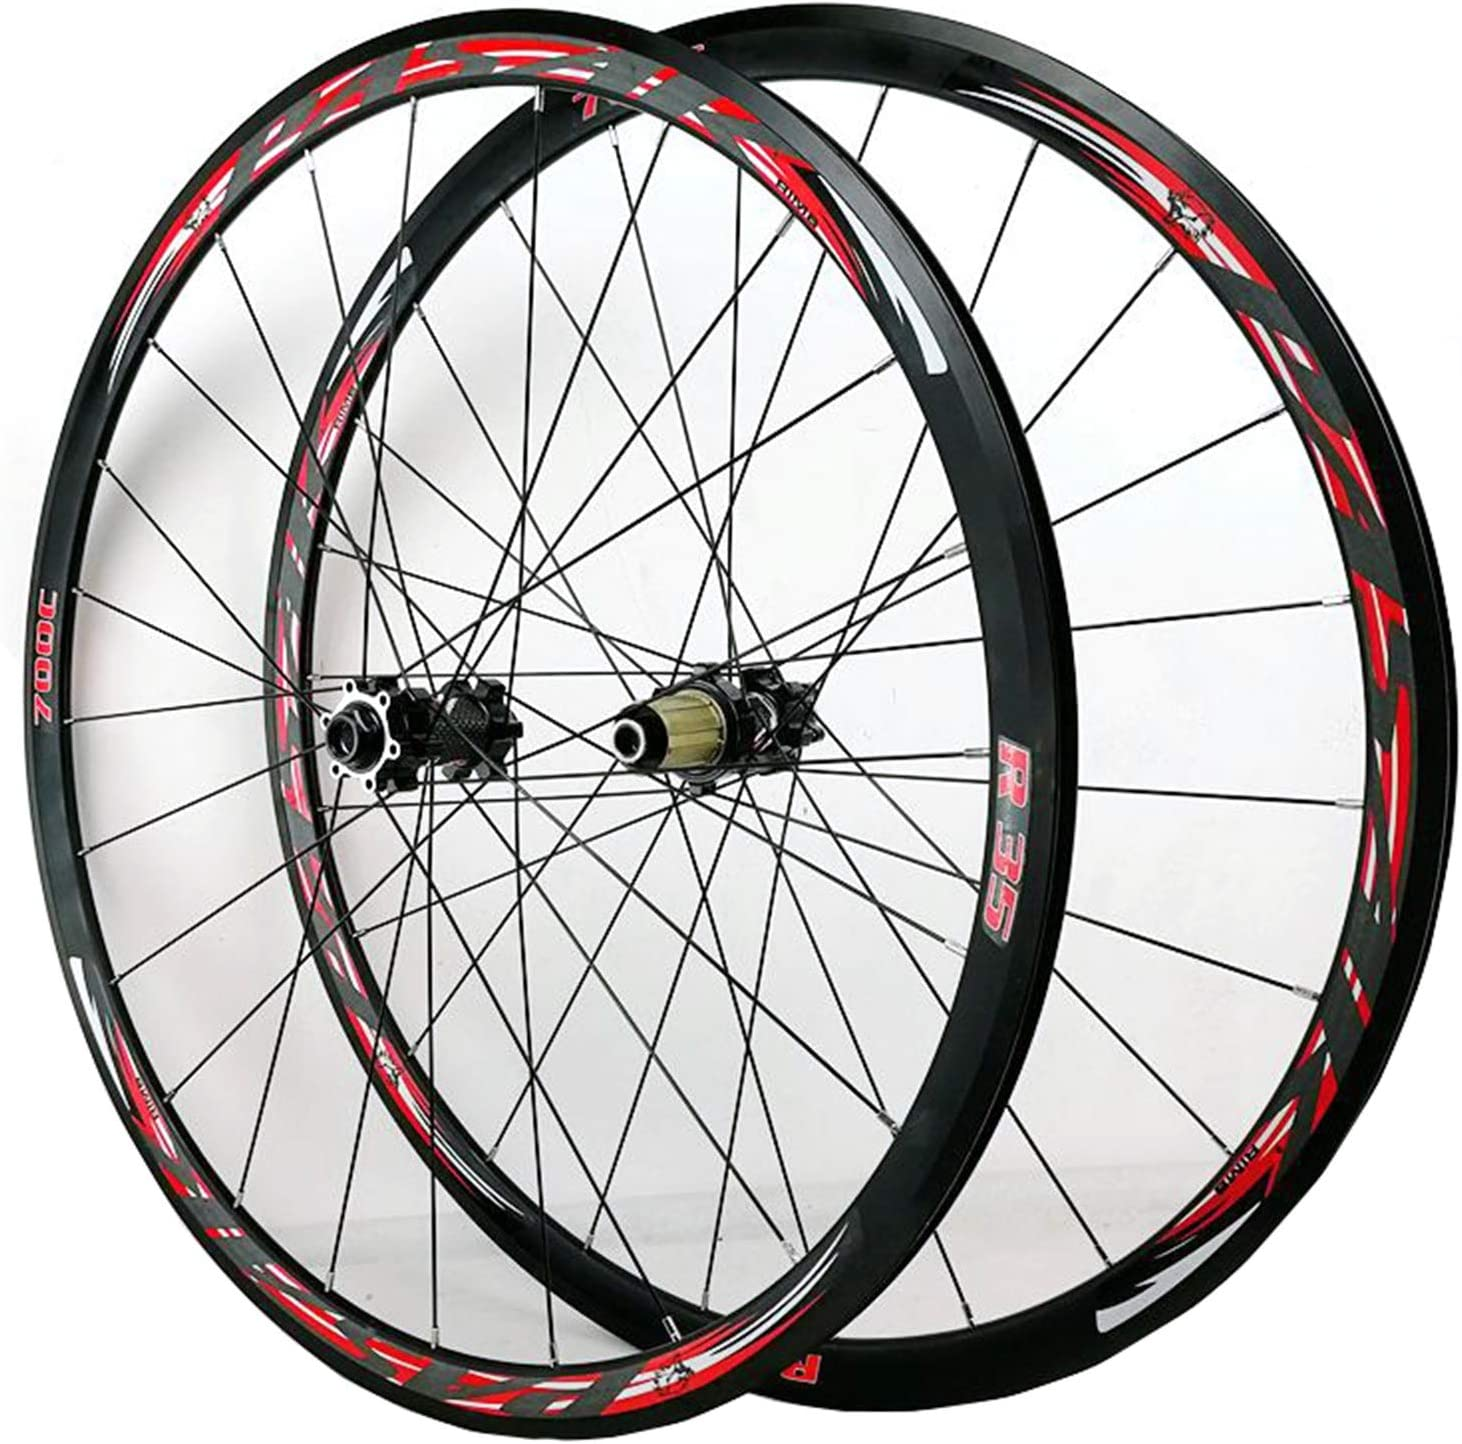 ZCXBHD 700C Disc Brake Road Bike Max 63% OFF Wheelset C 2021 autumn and winter new V Fr Thruaxle